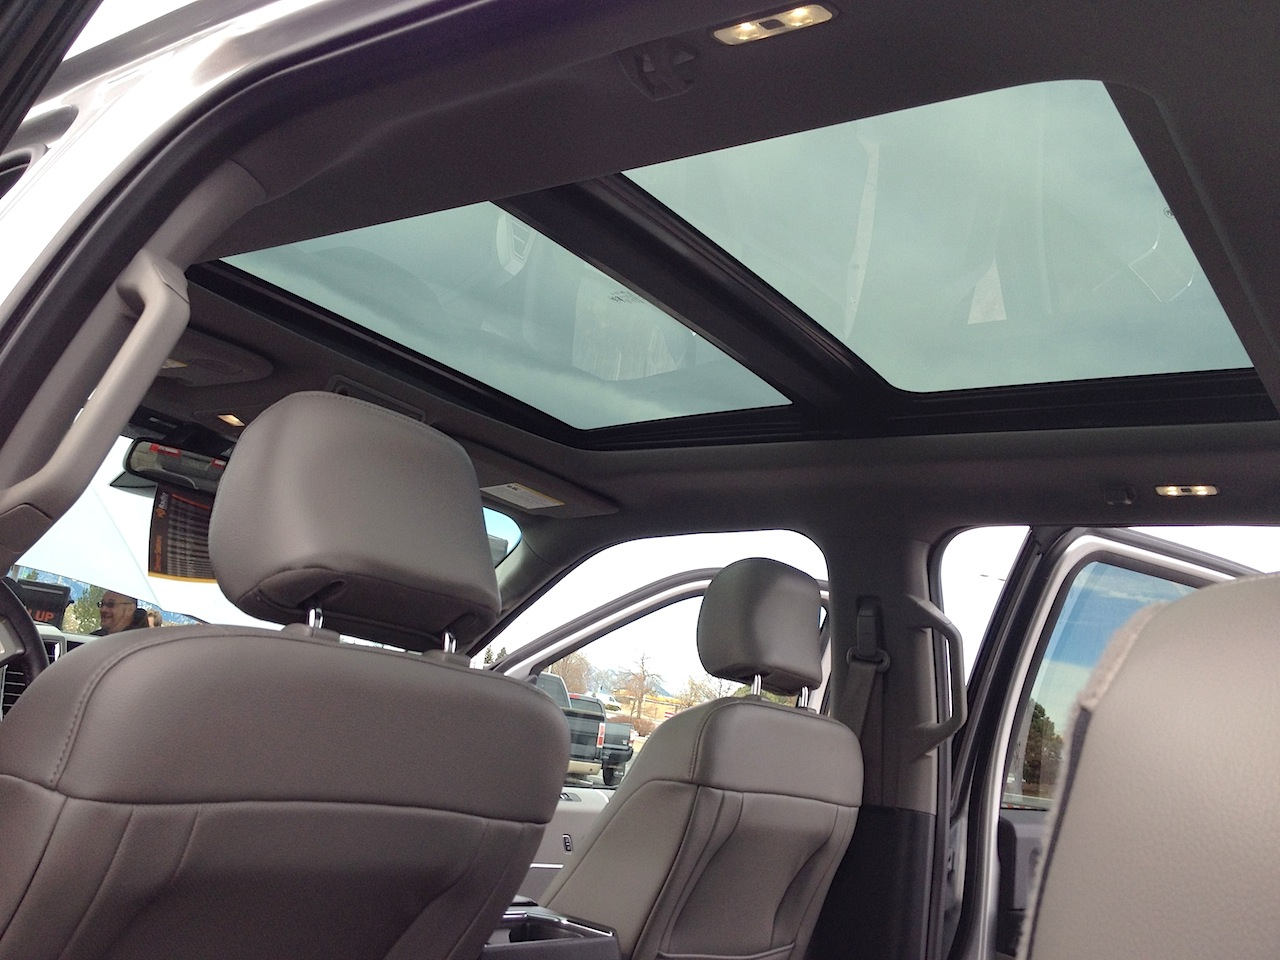 2016 Ford F 150 Panoramic Sunroof Ford F 150 Blog